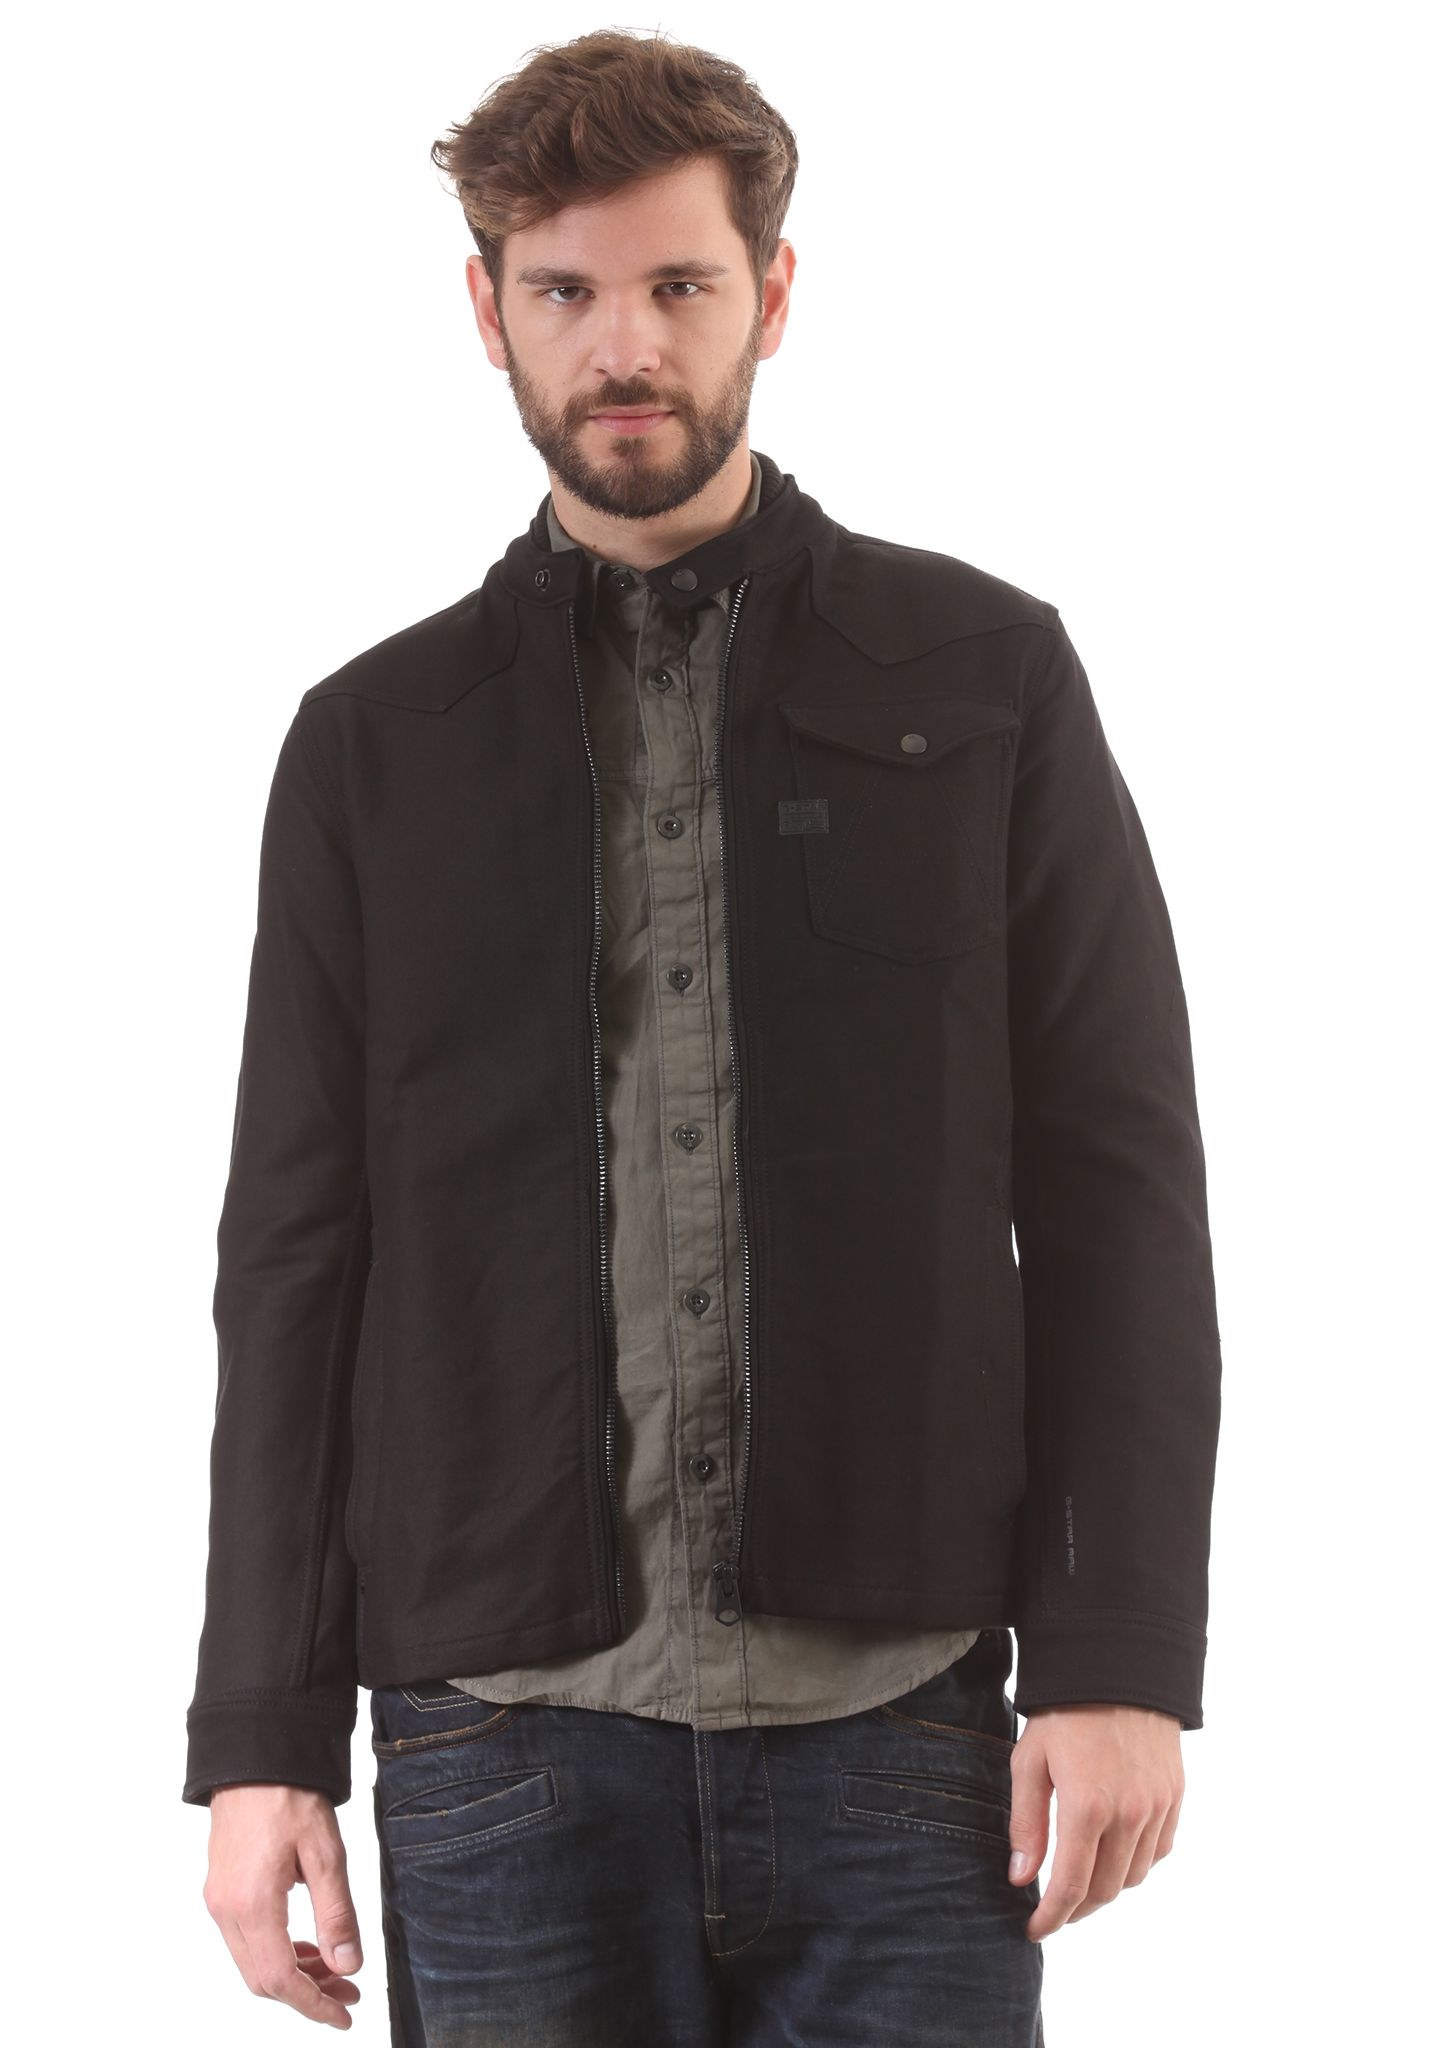 b0285296843 G-STAR A Crotch Pt Zip Overshirt - Chaqueta para Hombres - Negro - Planet  Sports